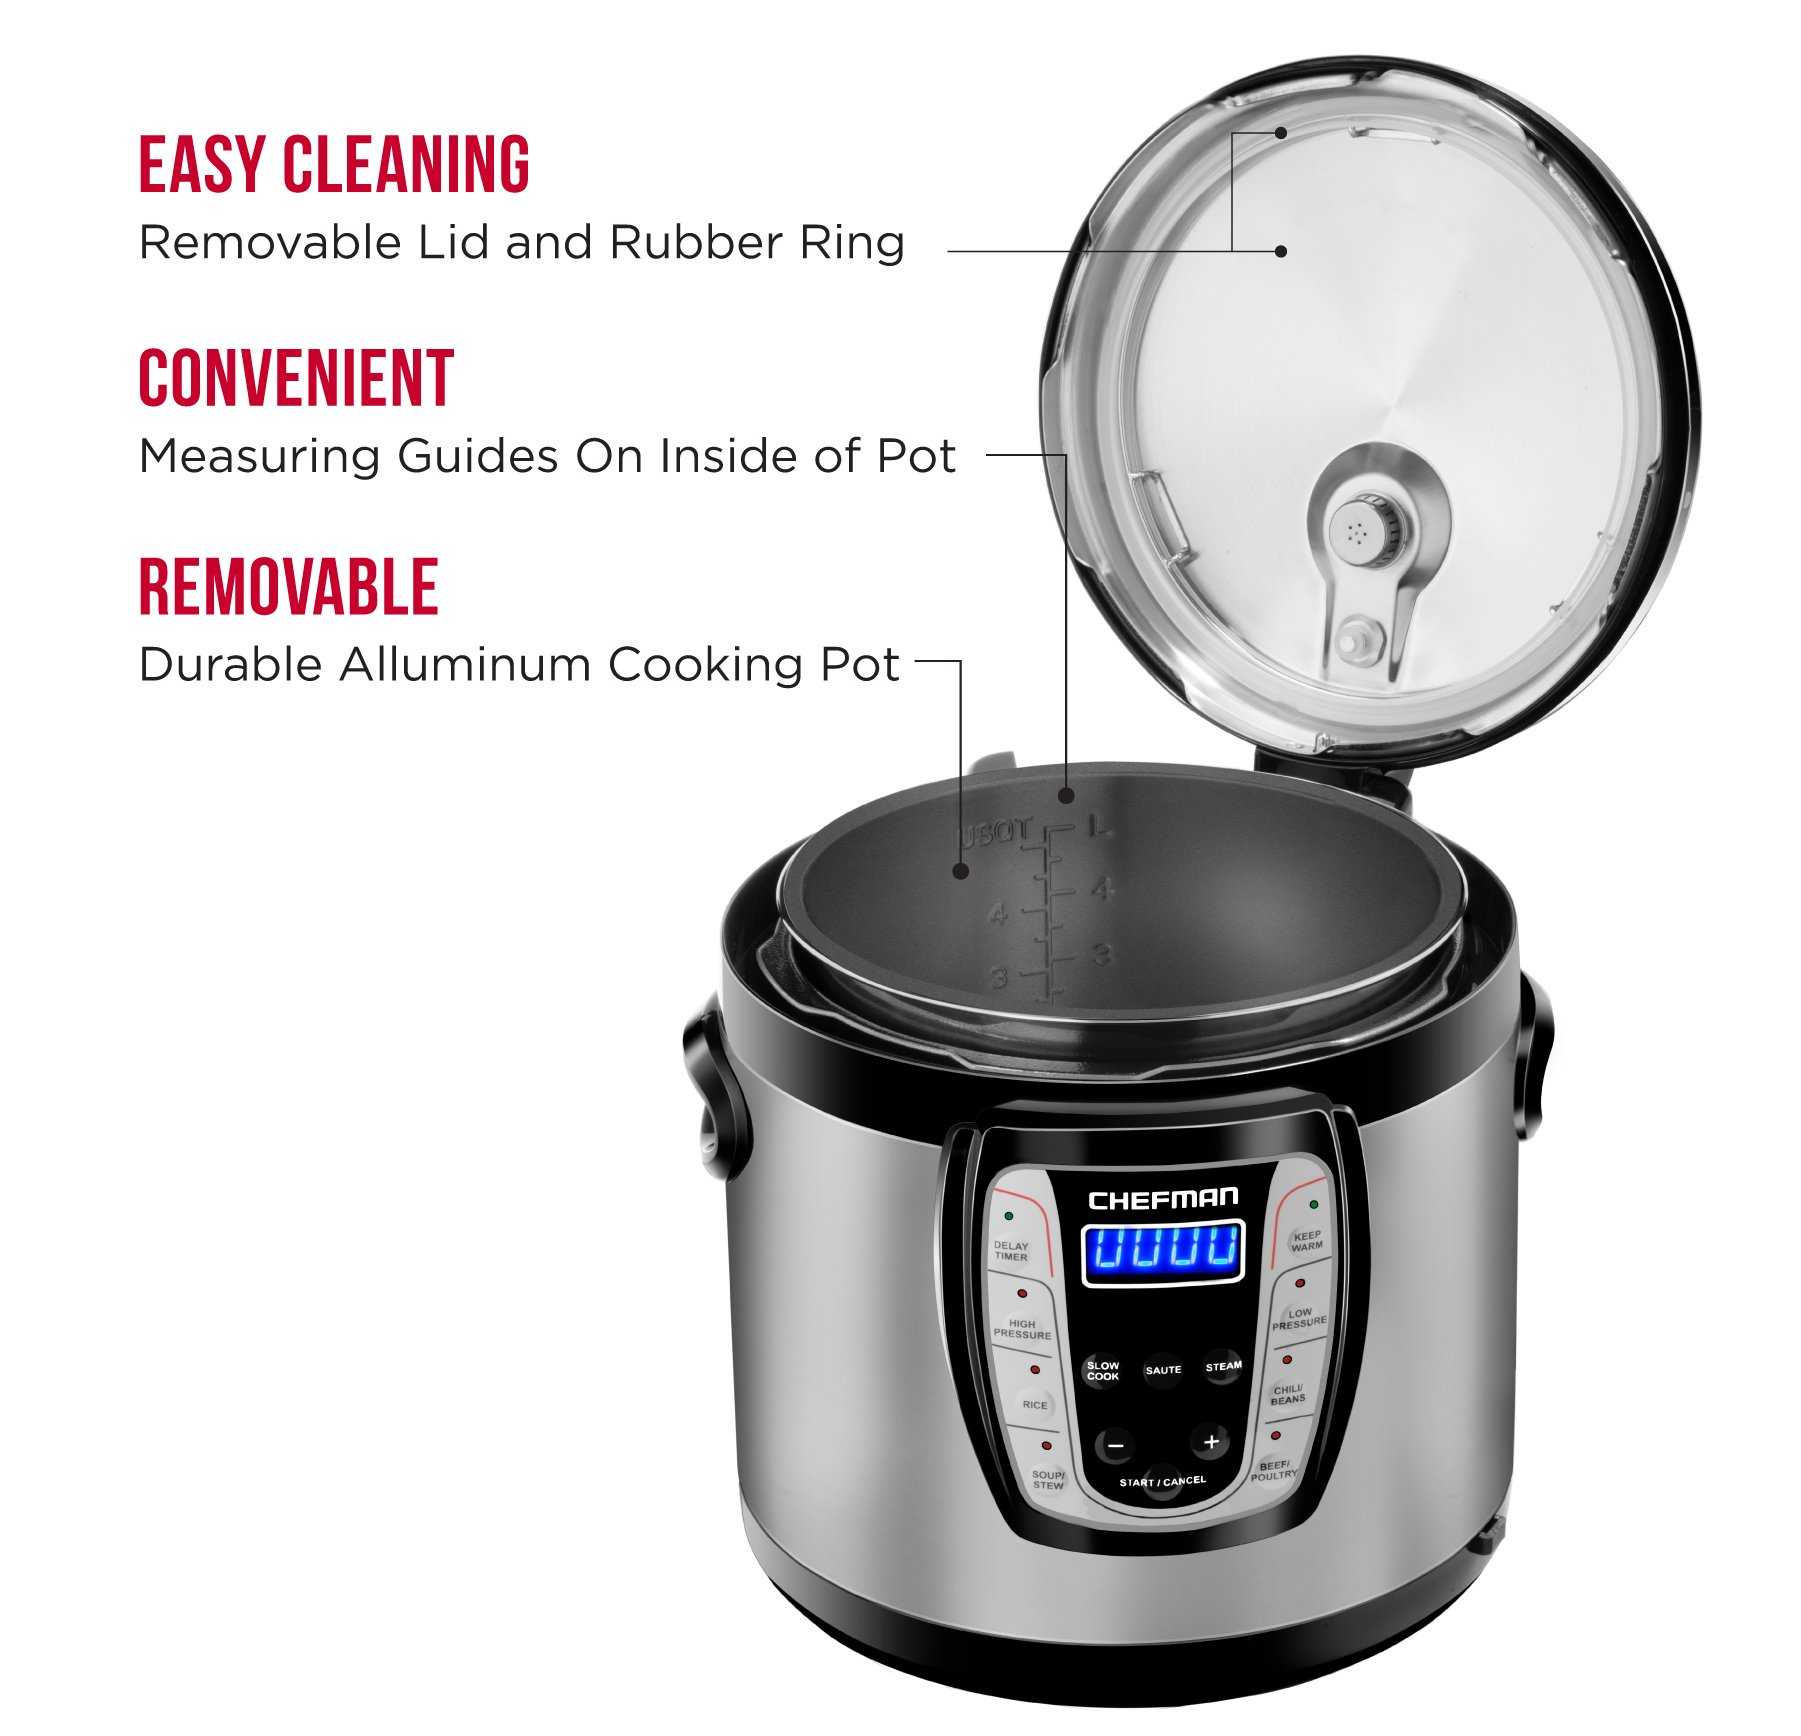 Chefman 6 Qt. Electric Multicooker, 9-in-1 Programmable Pressure Cooker, Prepare Dishes in an Instant, Aluminum Pot Multifunctional Slow Cooker, Rice Cooker/Steamer, Sauté, Yogurt, Soup Maker by Chefman (Image #4)